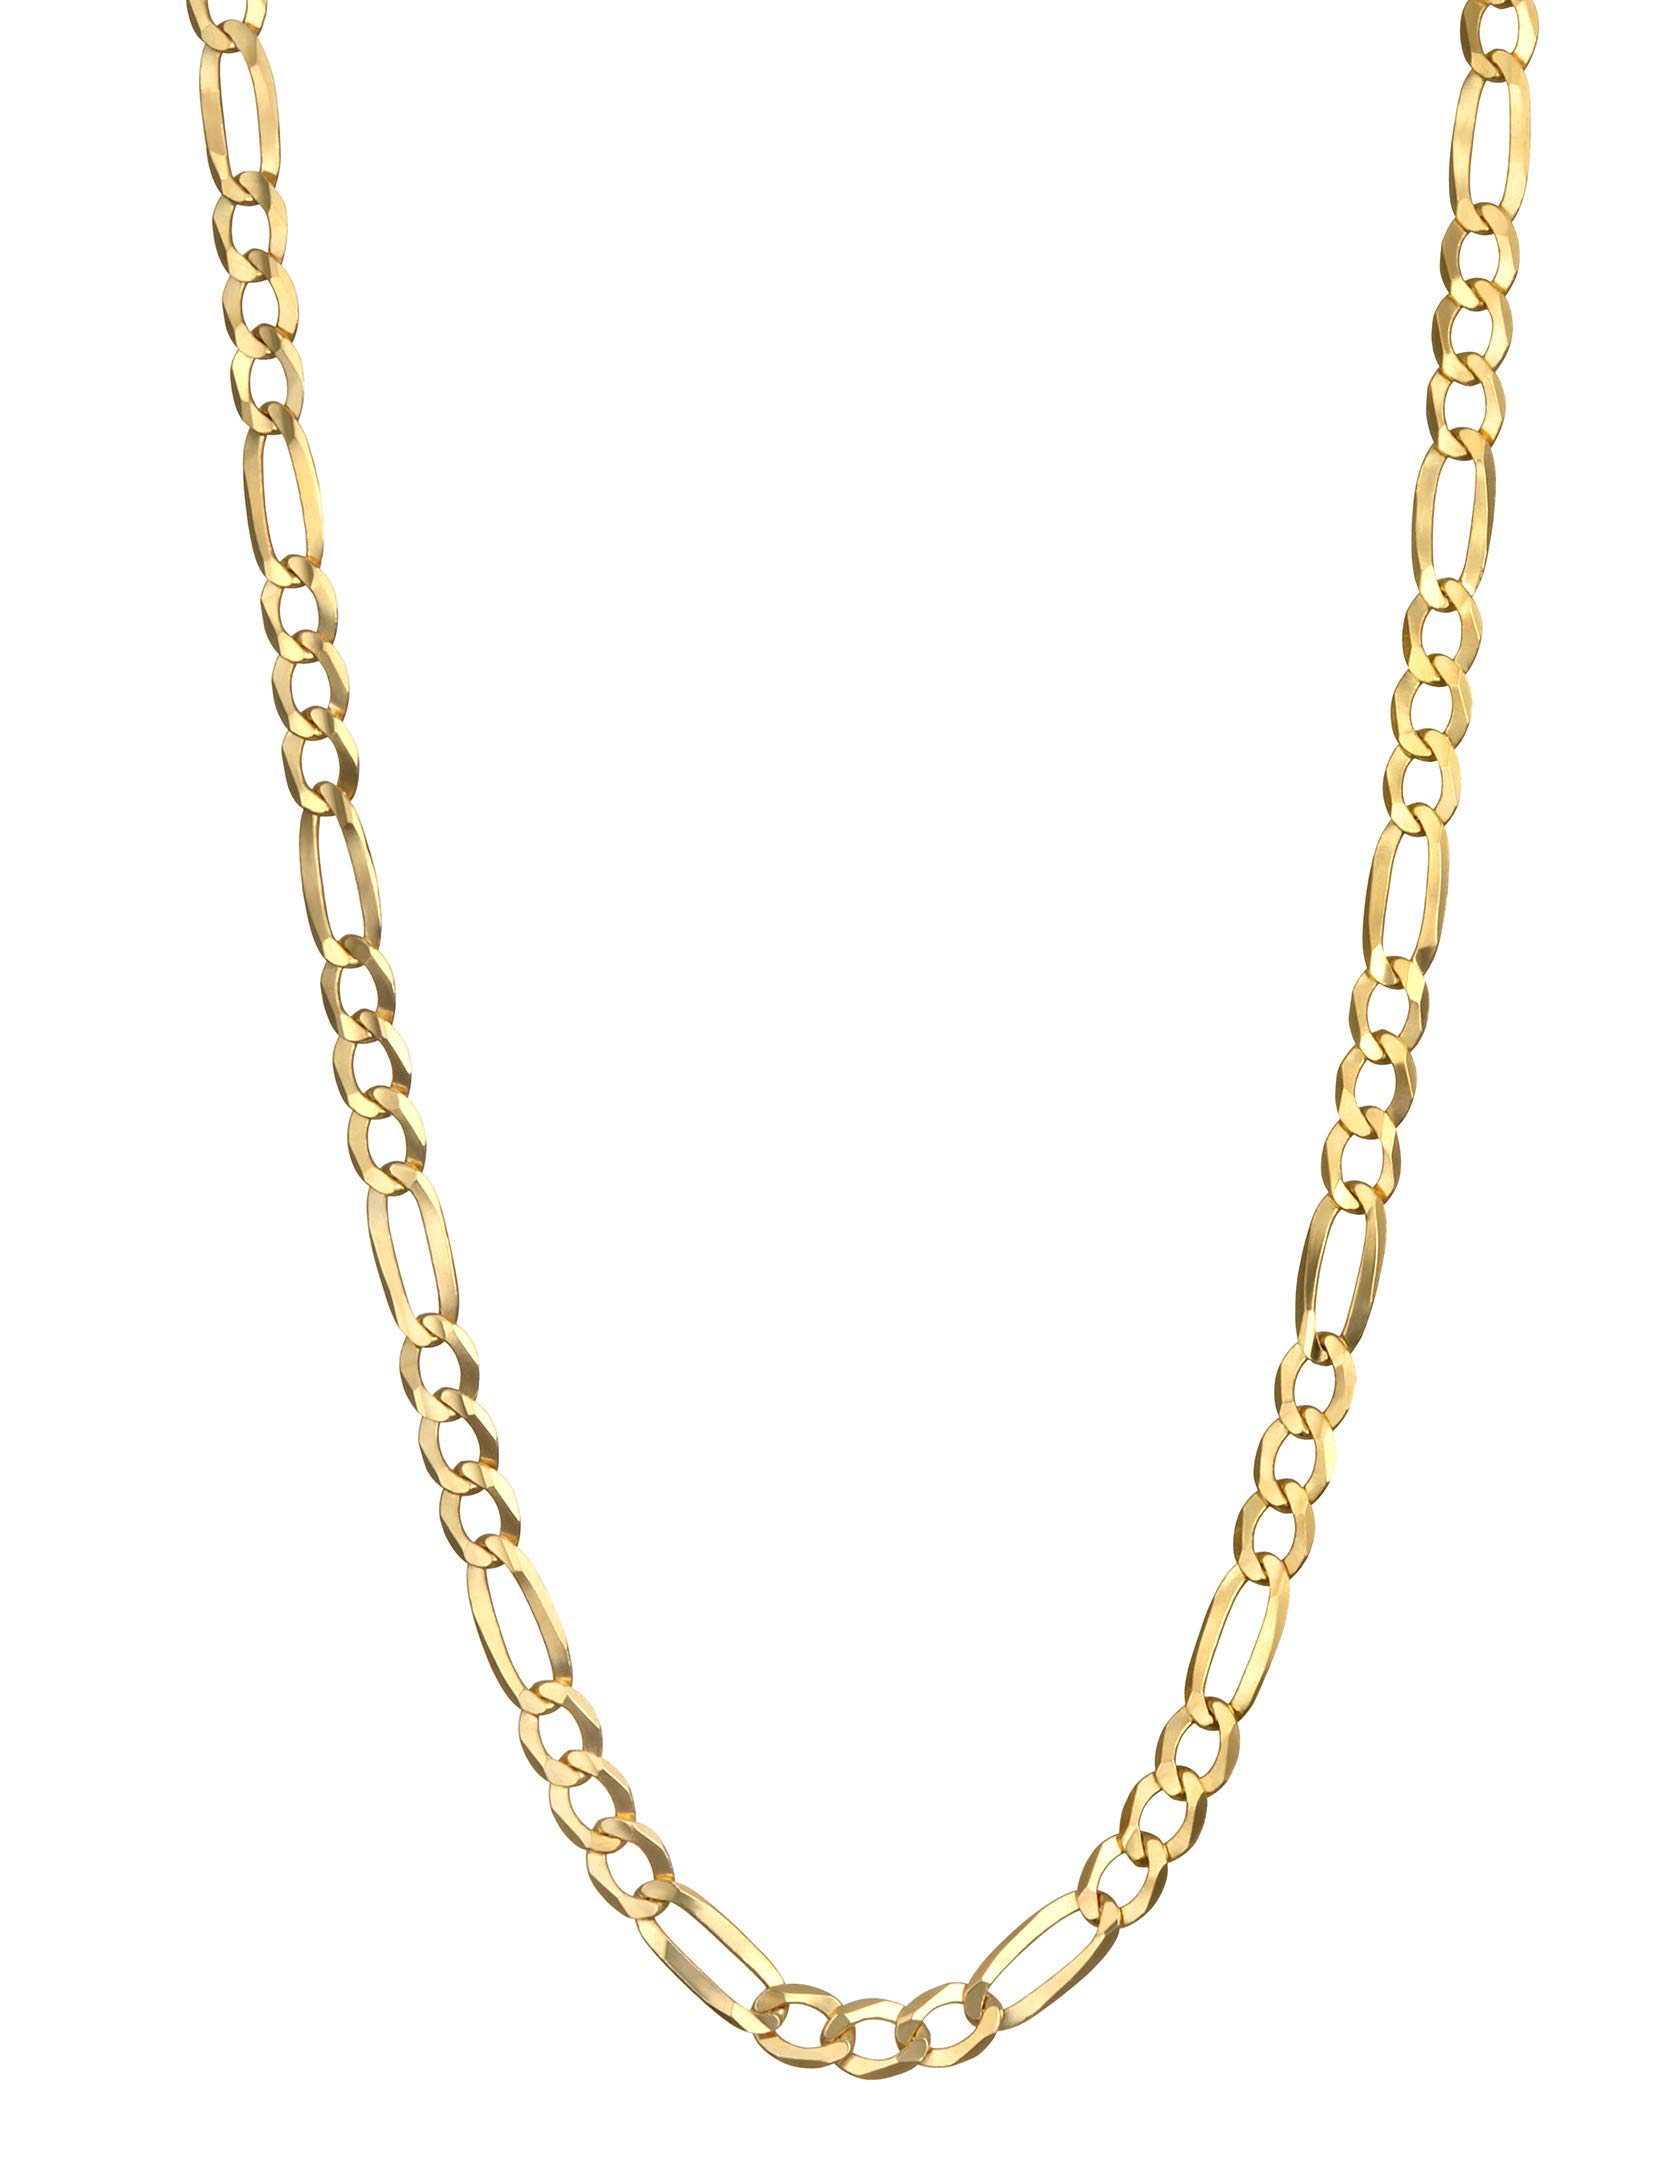 Pairfection 14K Yellow Solid Figaro Gold with Lobster Clasp - 3.20 MM Wide 28 Inches Long Necklace